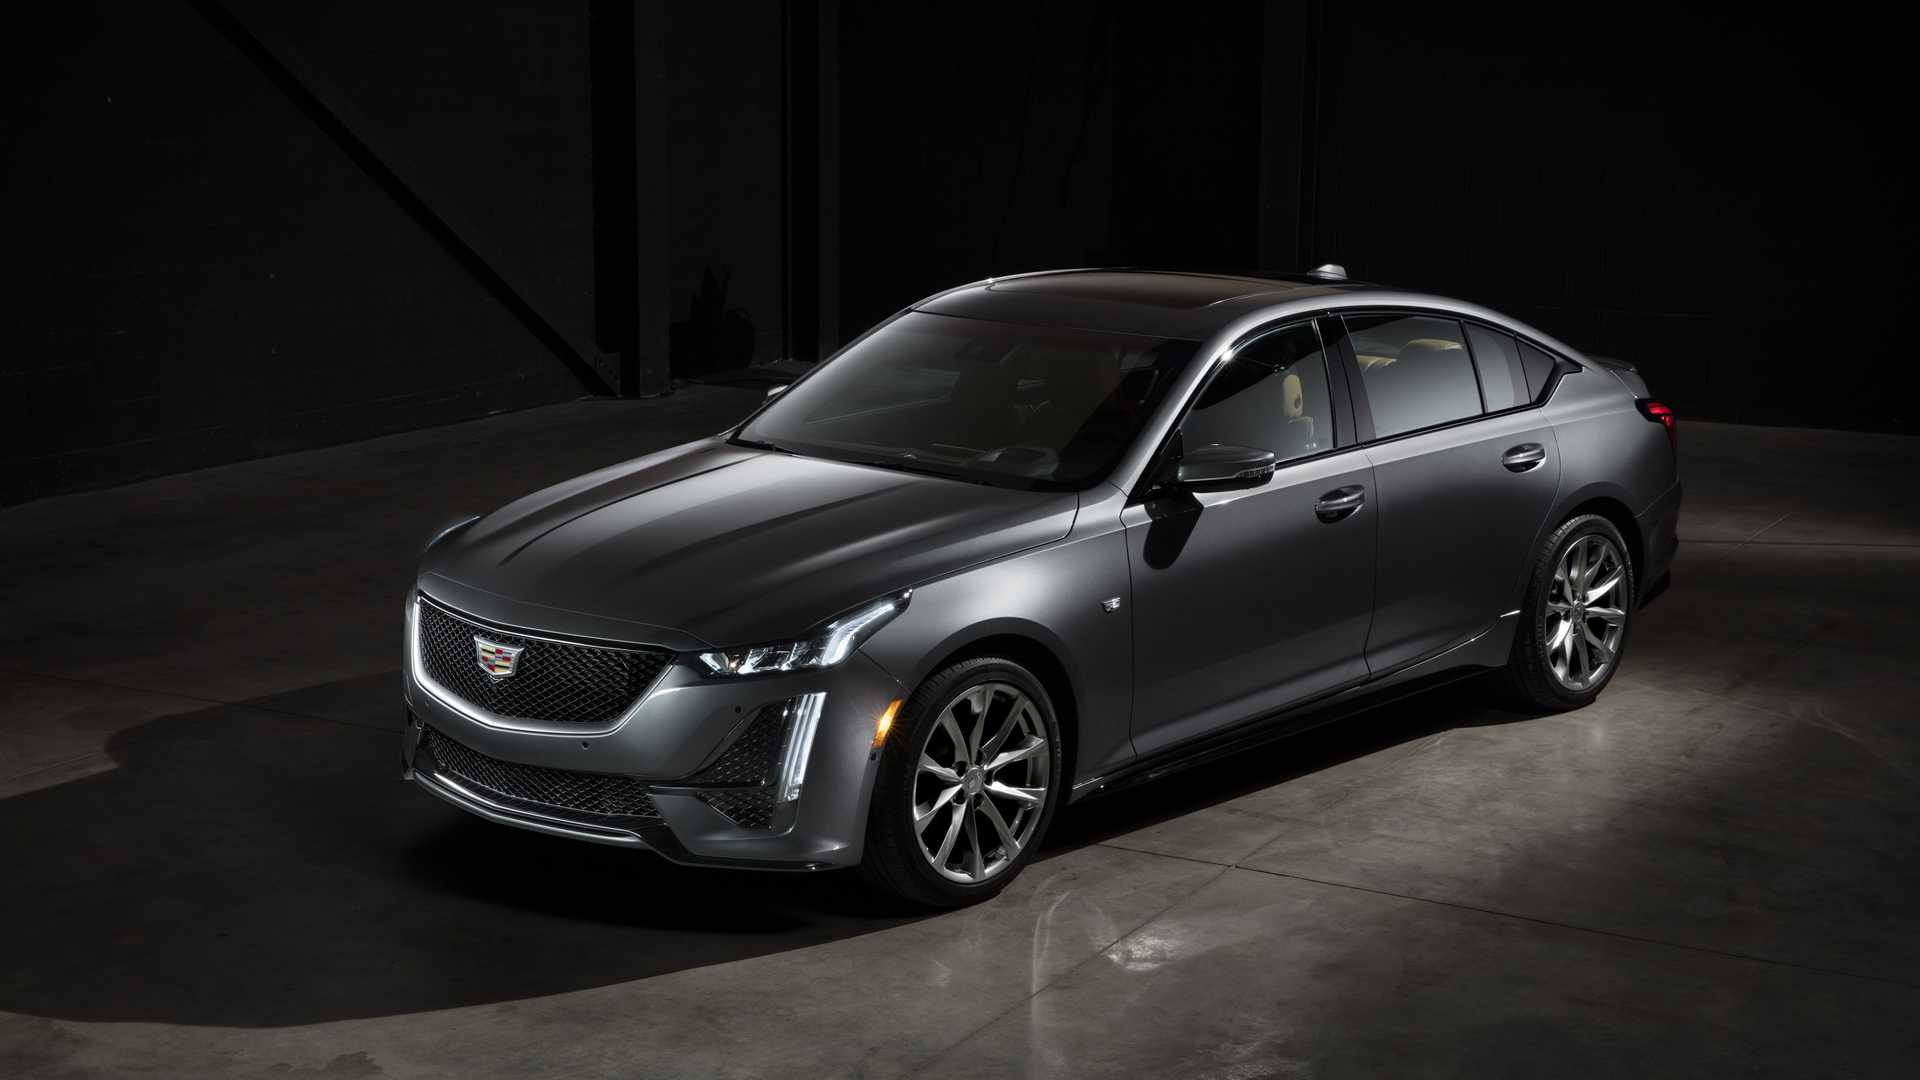 78 The Best Photos Of 2020 Cadillac Ct5 Specs